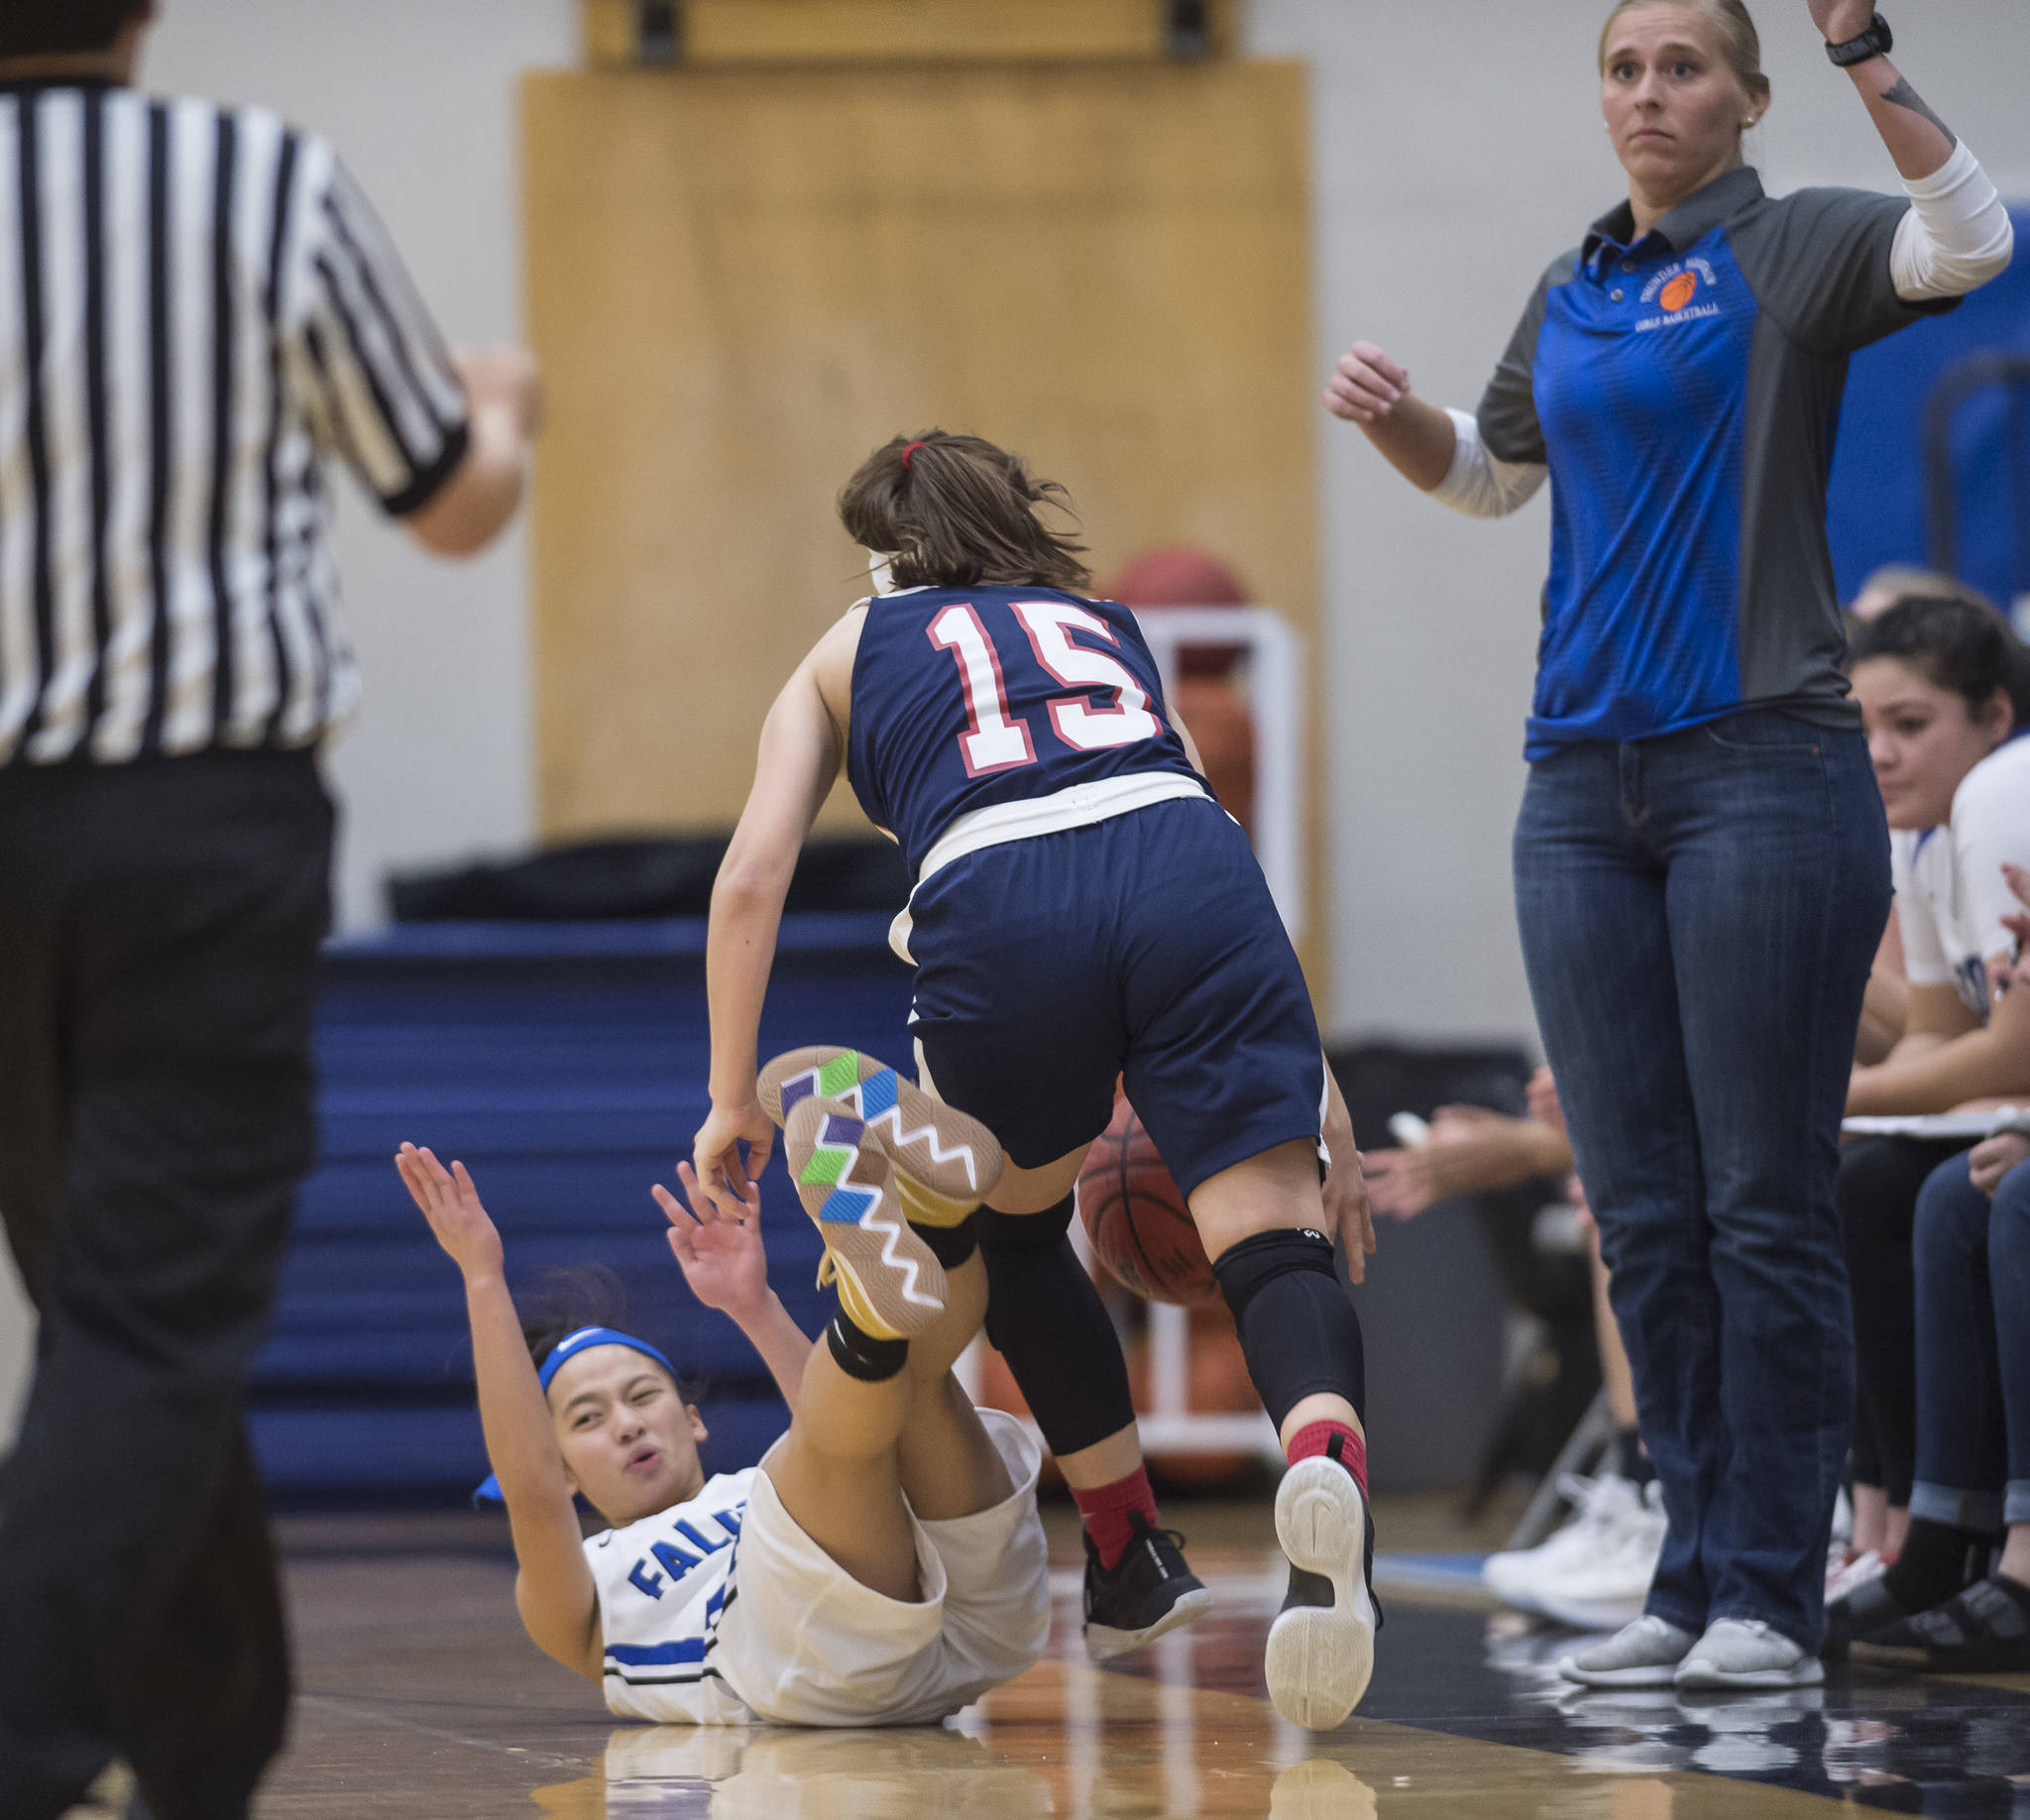 Thunder Mountain's Mary Neal Garcia falls and is called for a foul against North Pole's Laura Donovan at TMHS on Thursday, Dec. 13, 2018. (Michael Penn | Juneau Empire)